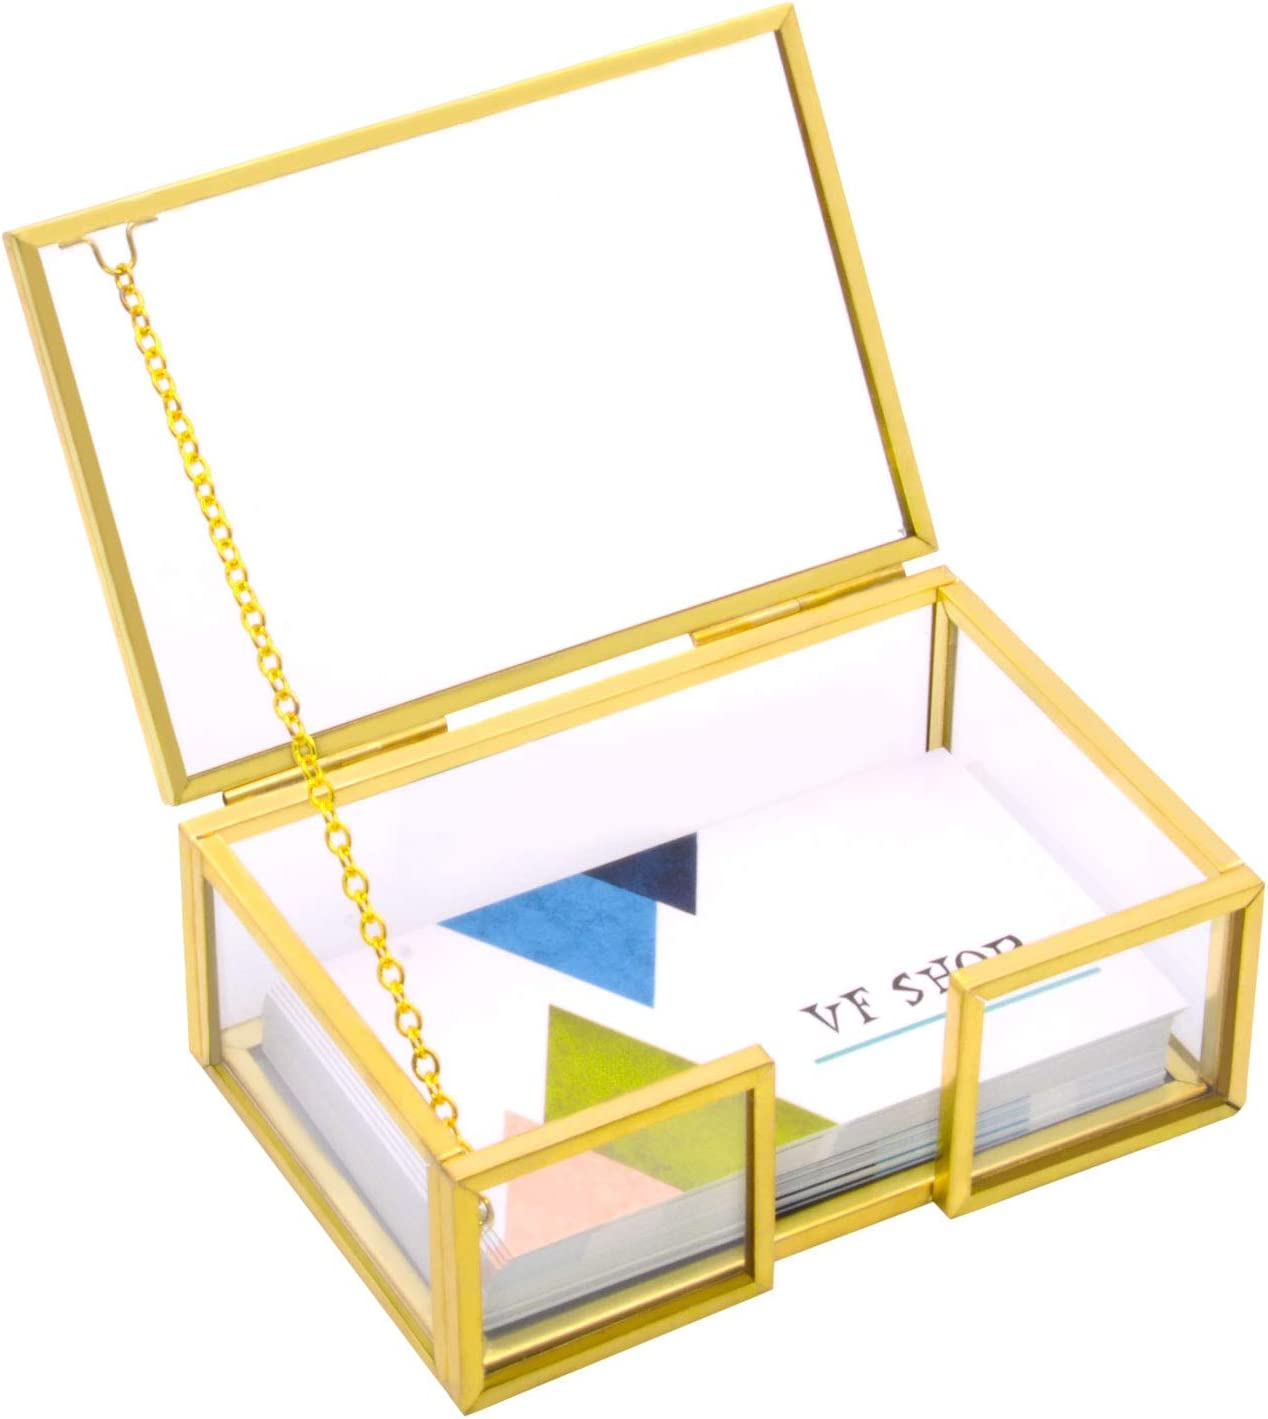 VoiceFly Glass Business Card Holder Box with Lid, Vintage Gold Metal Name Card Display Box Organizer Desktop Business Card Container Box for Office Exhibition Meeting Countertop